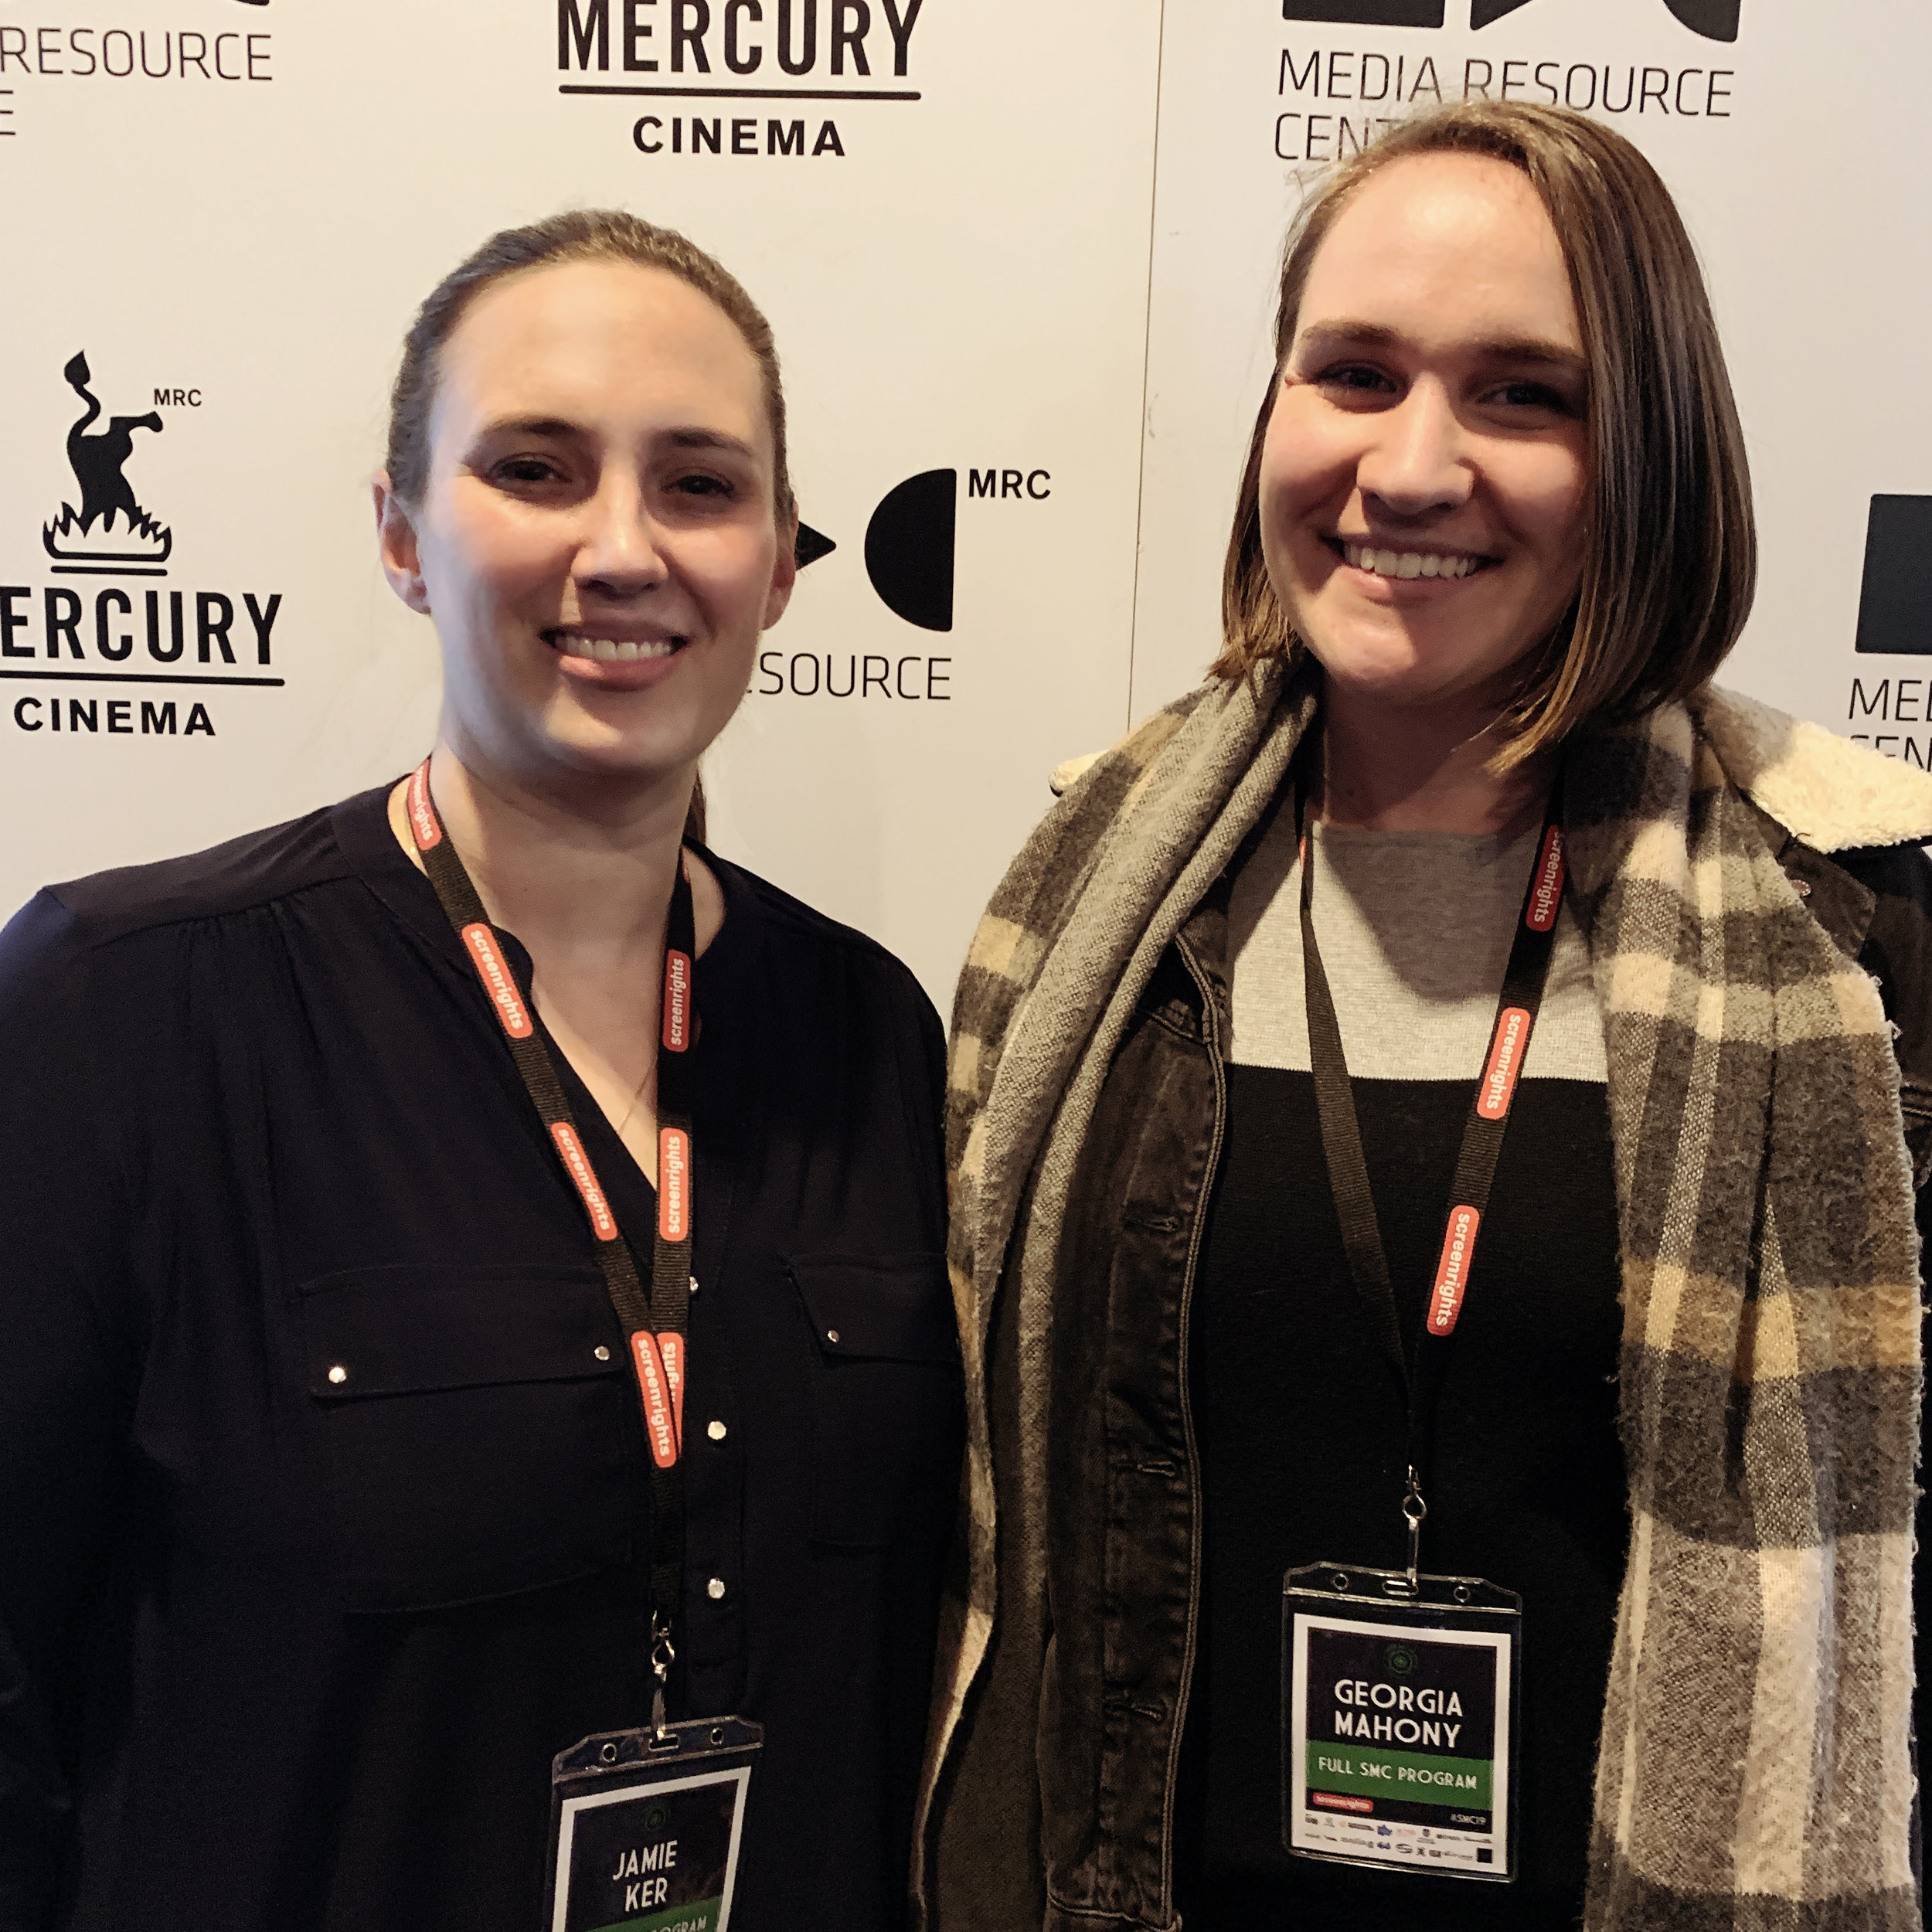 Screen Makers Conference 2019 - 28.07.19We were very excited to attend our very first event as She and the Others, the 2019 Screen Makers Conference presented by the Media Resource Centre in Adelaide, Australia. We had a fantastic time attending various panels and roundtables, and even had our very first chance to pitch an idea. The Screen Makers Conference is the leading event for emerging and early-career screen content makers across Australia and we'd highly recommend it!